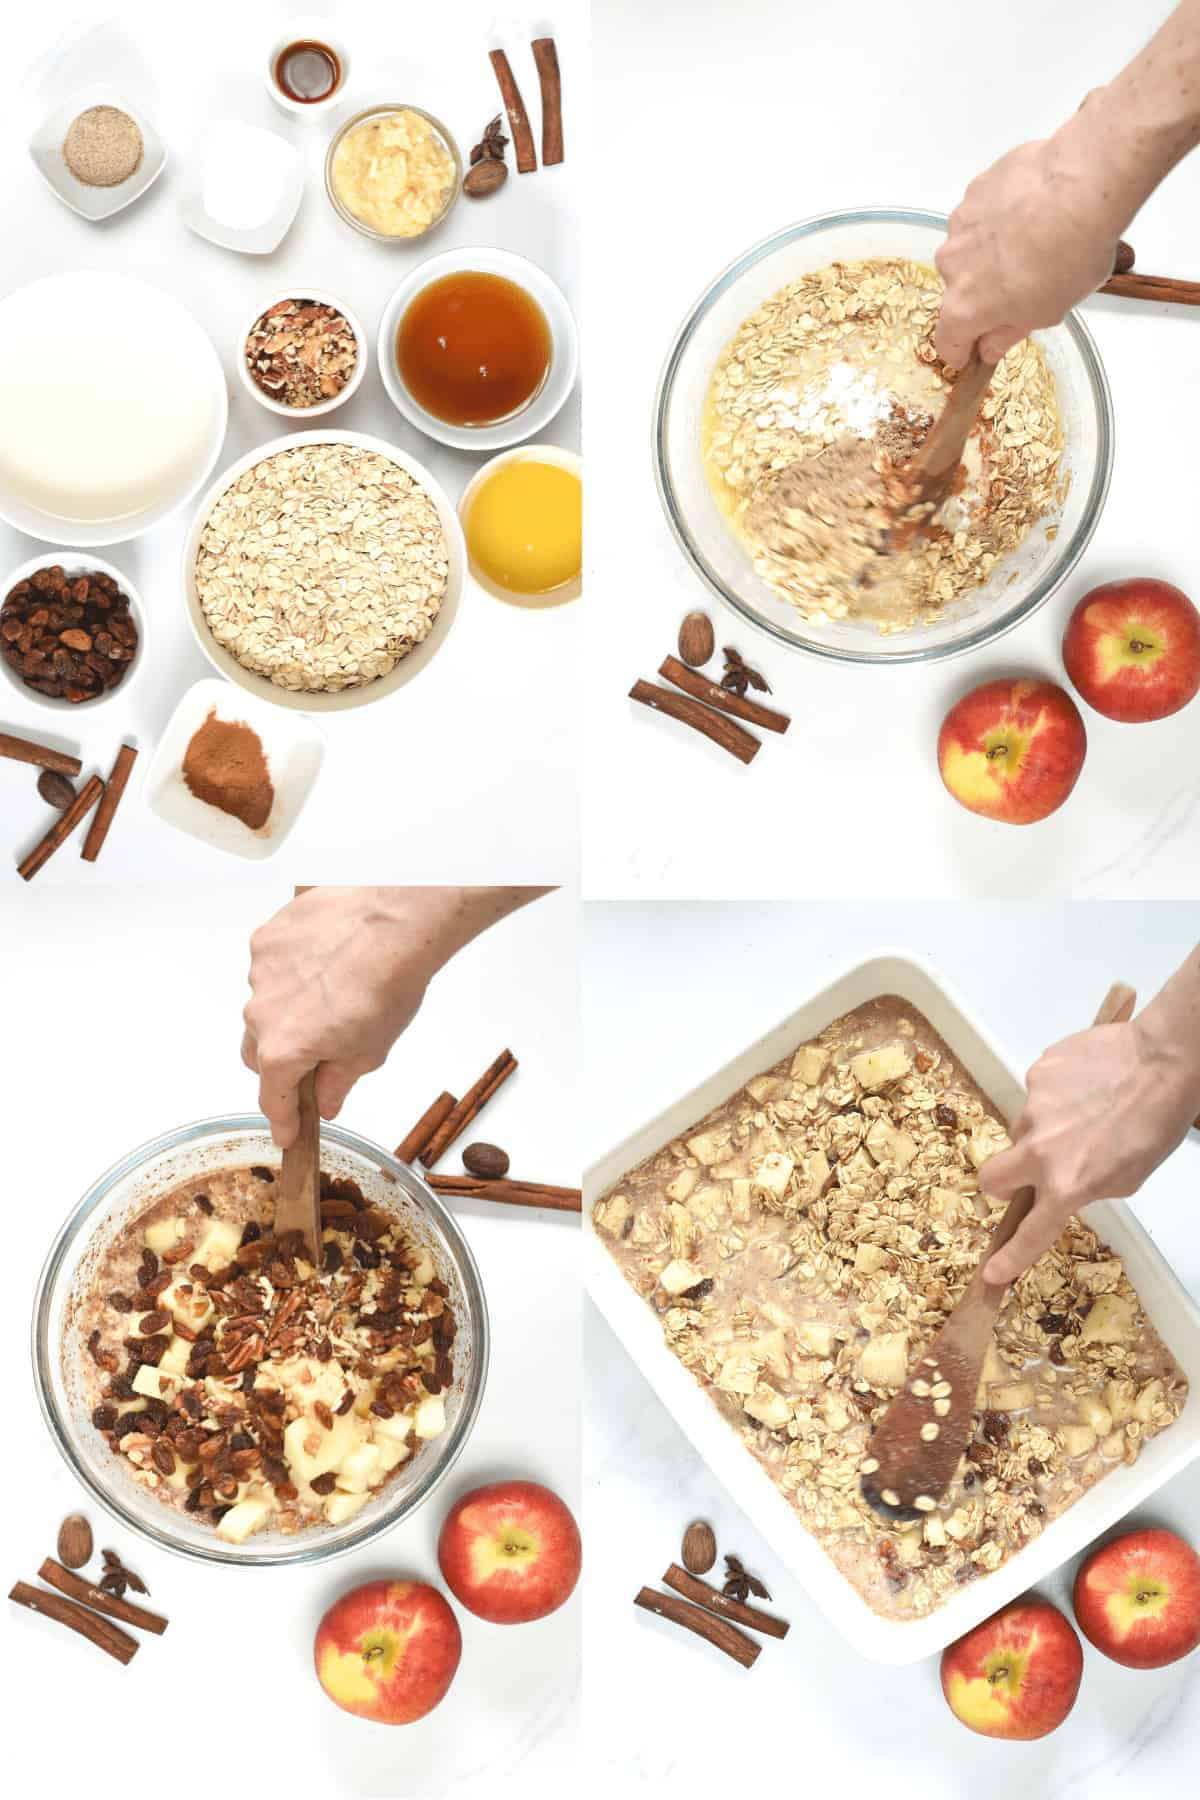 How to make Baked Apple Oatmeal